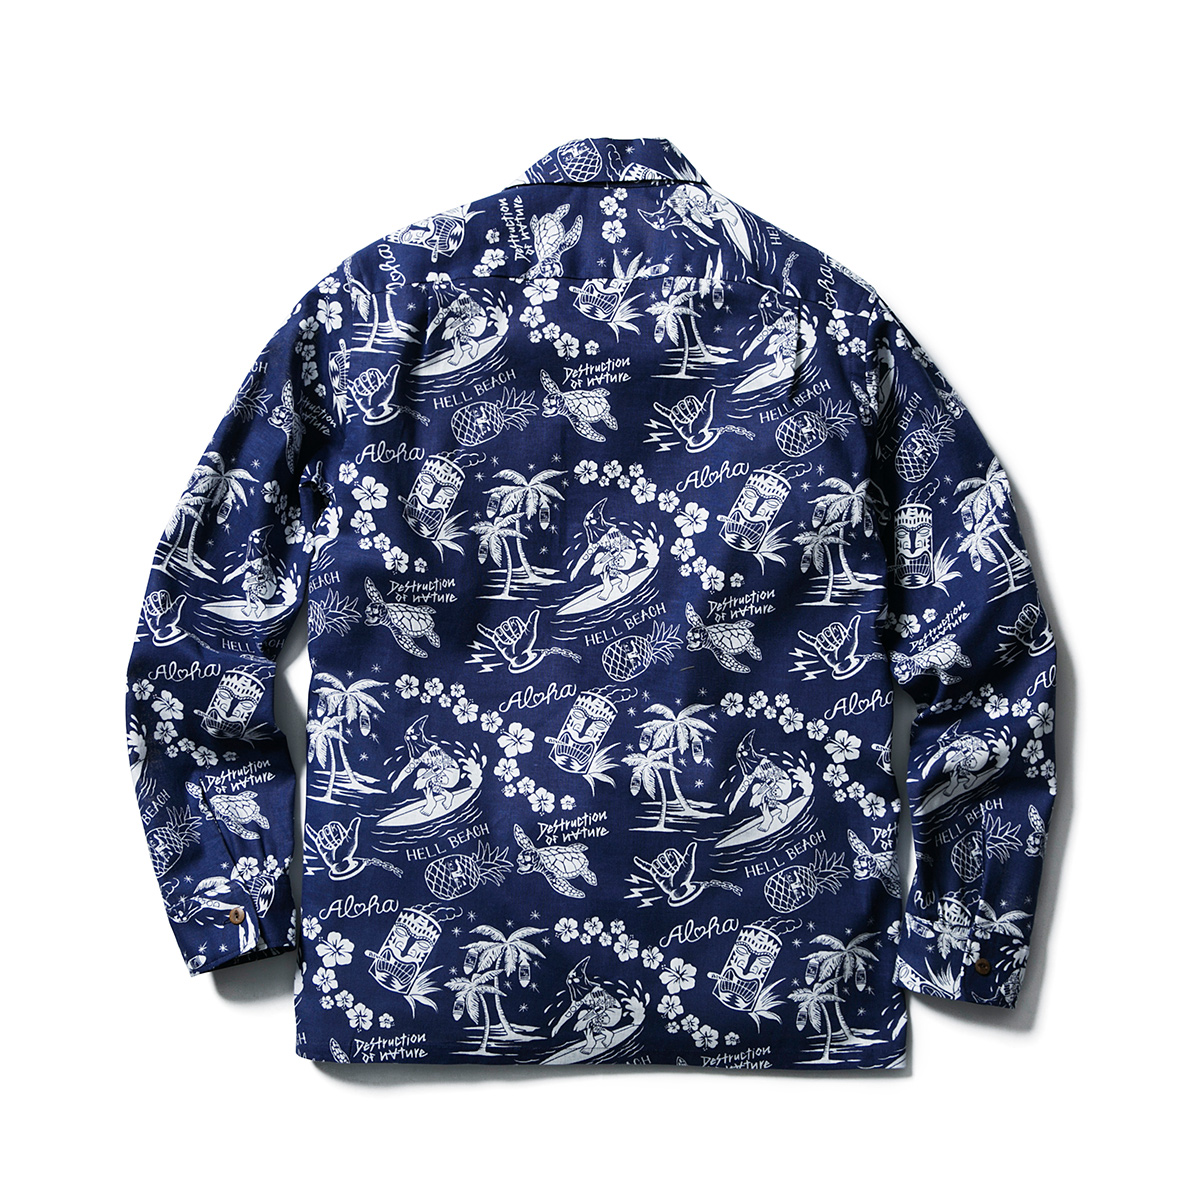 HELL BEACH SHIRTS L/S